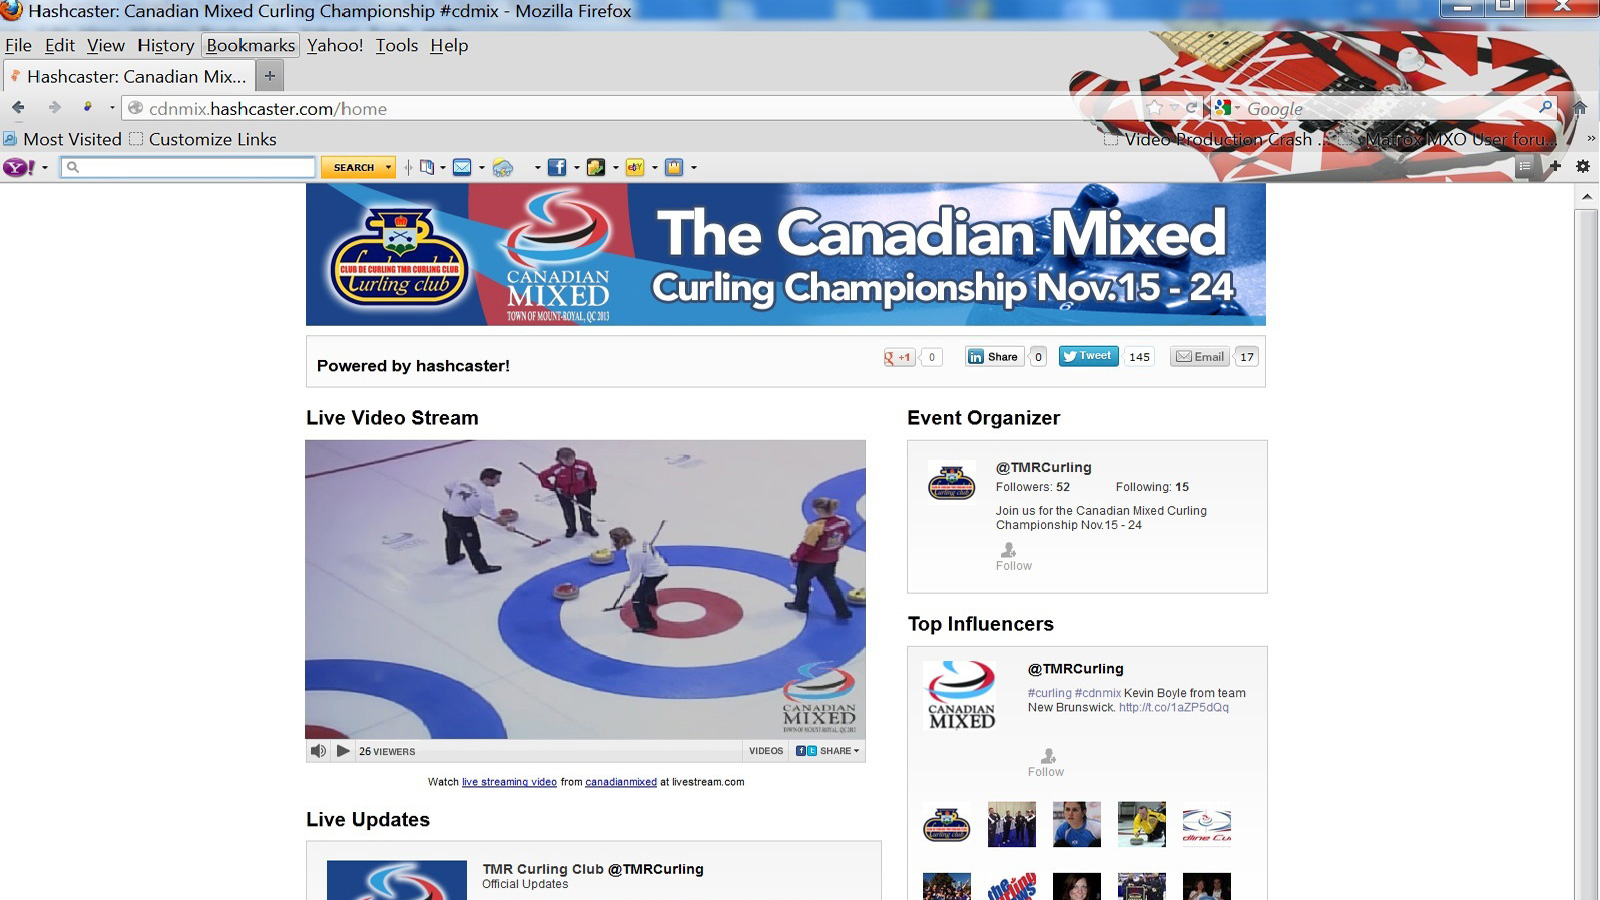 The Canadian Mixed Curling Championship